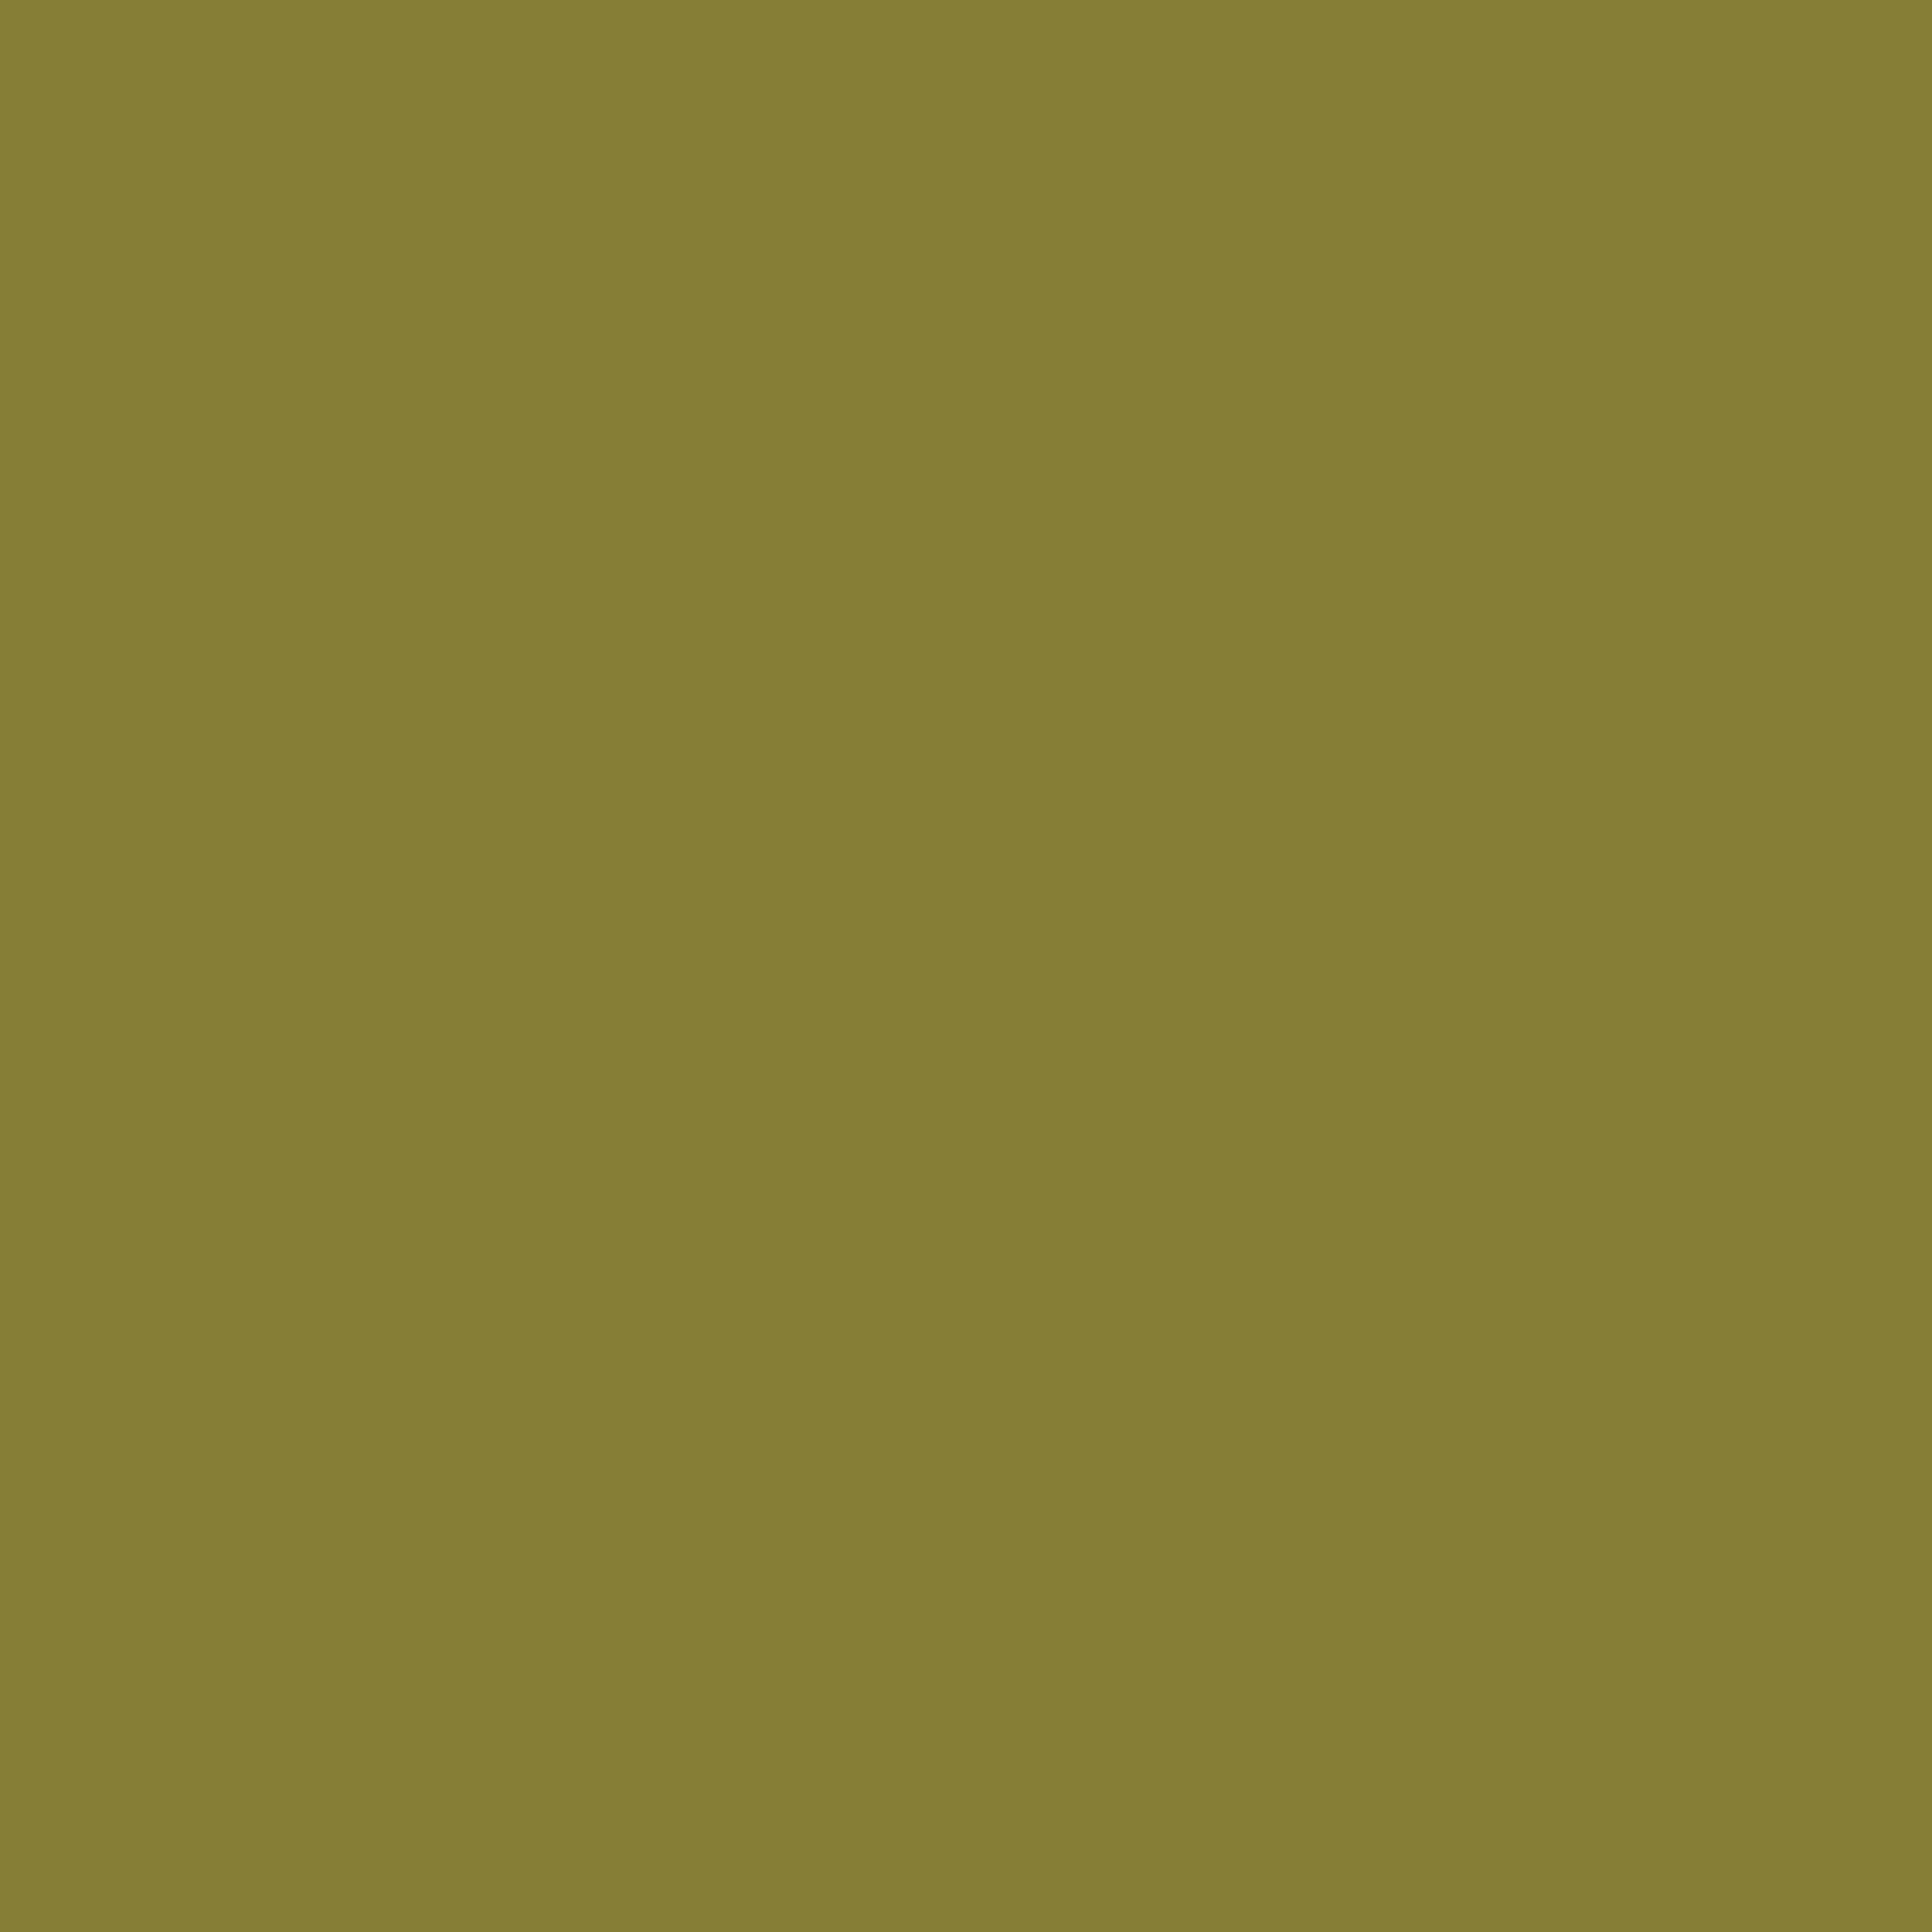 2048x2048 Old Moss Green Solid Color Background